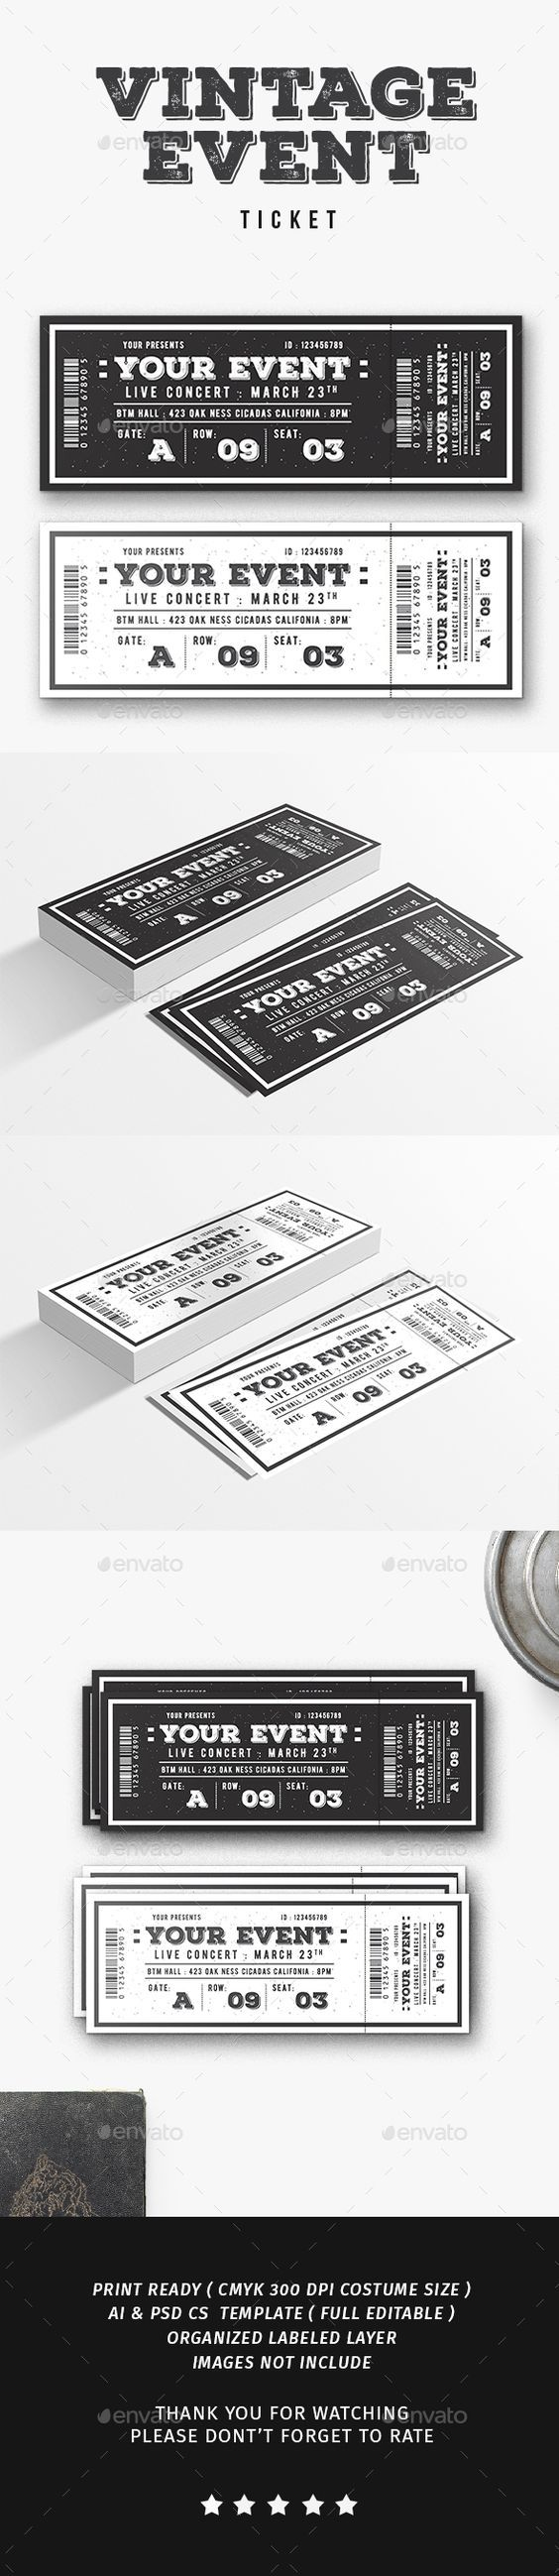 Concert Ticket Template Free Download Fascinating Vintage Event Ticket  Event Ticket